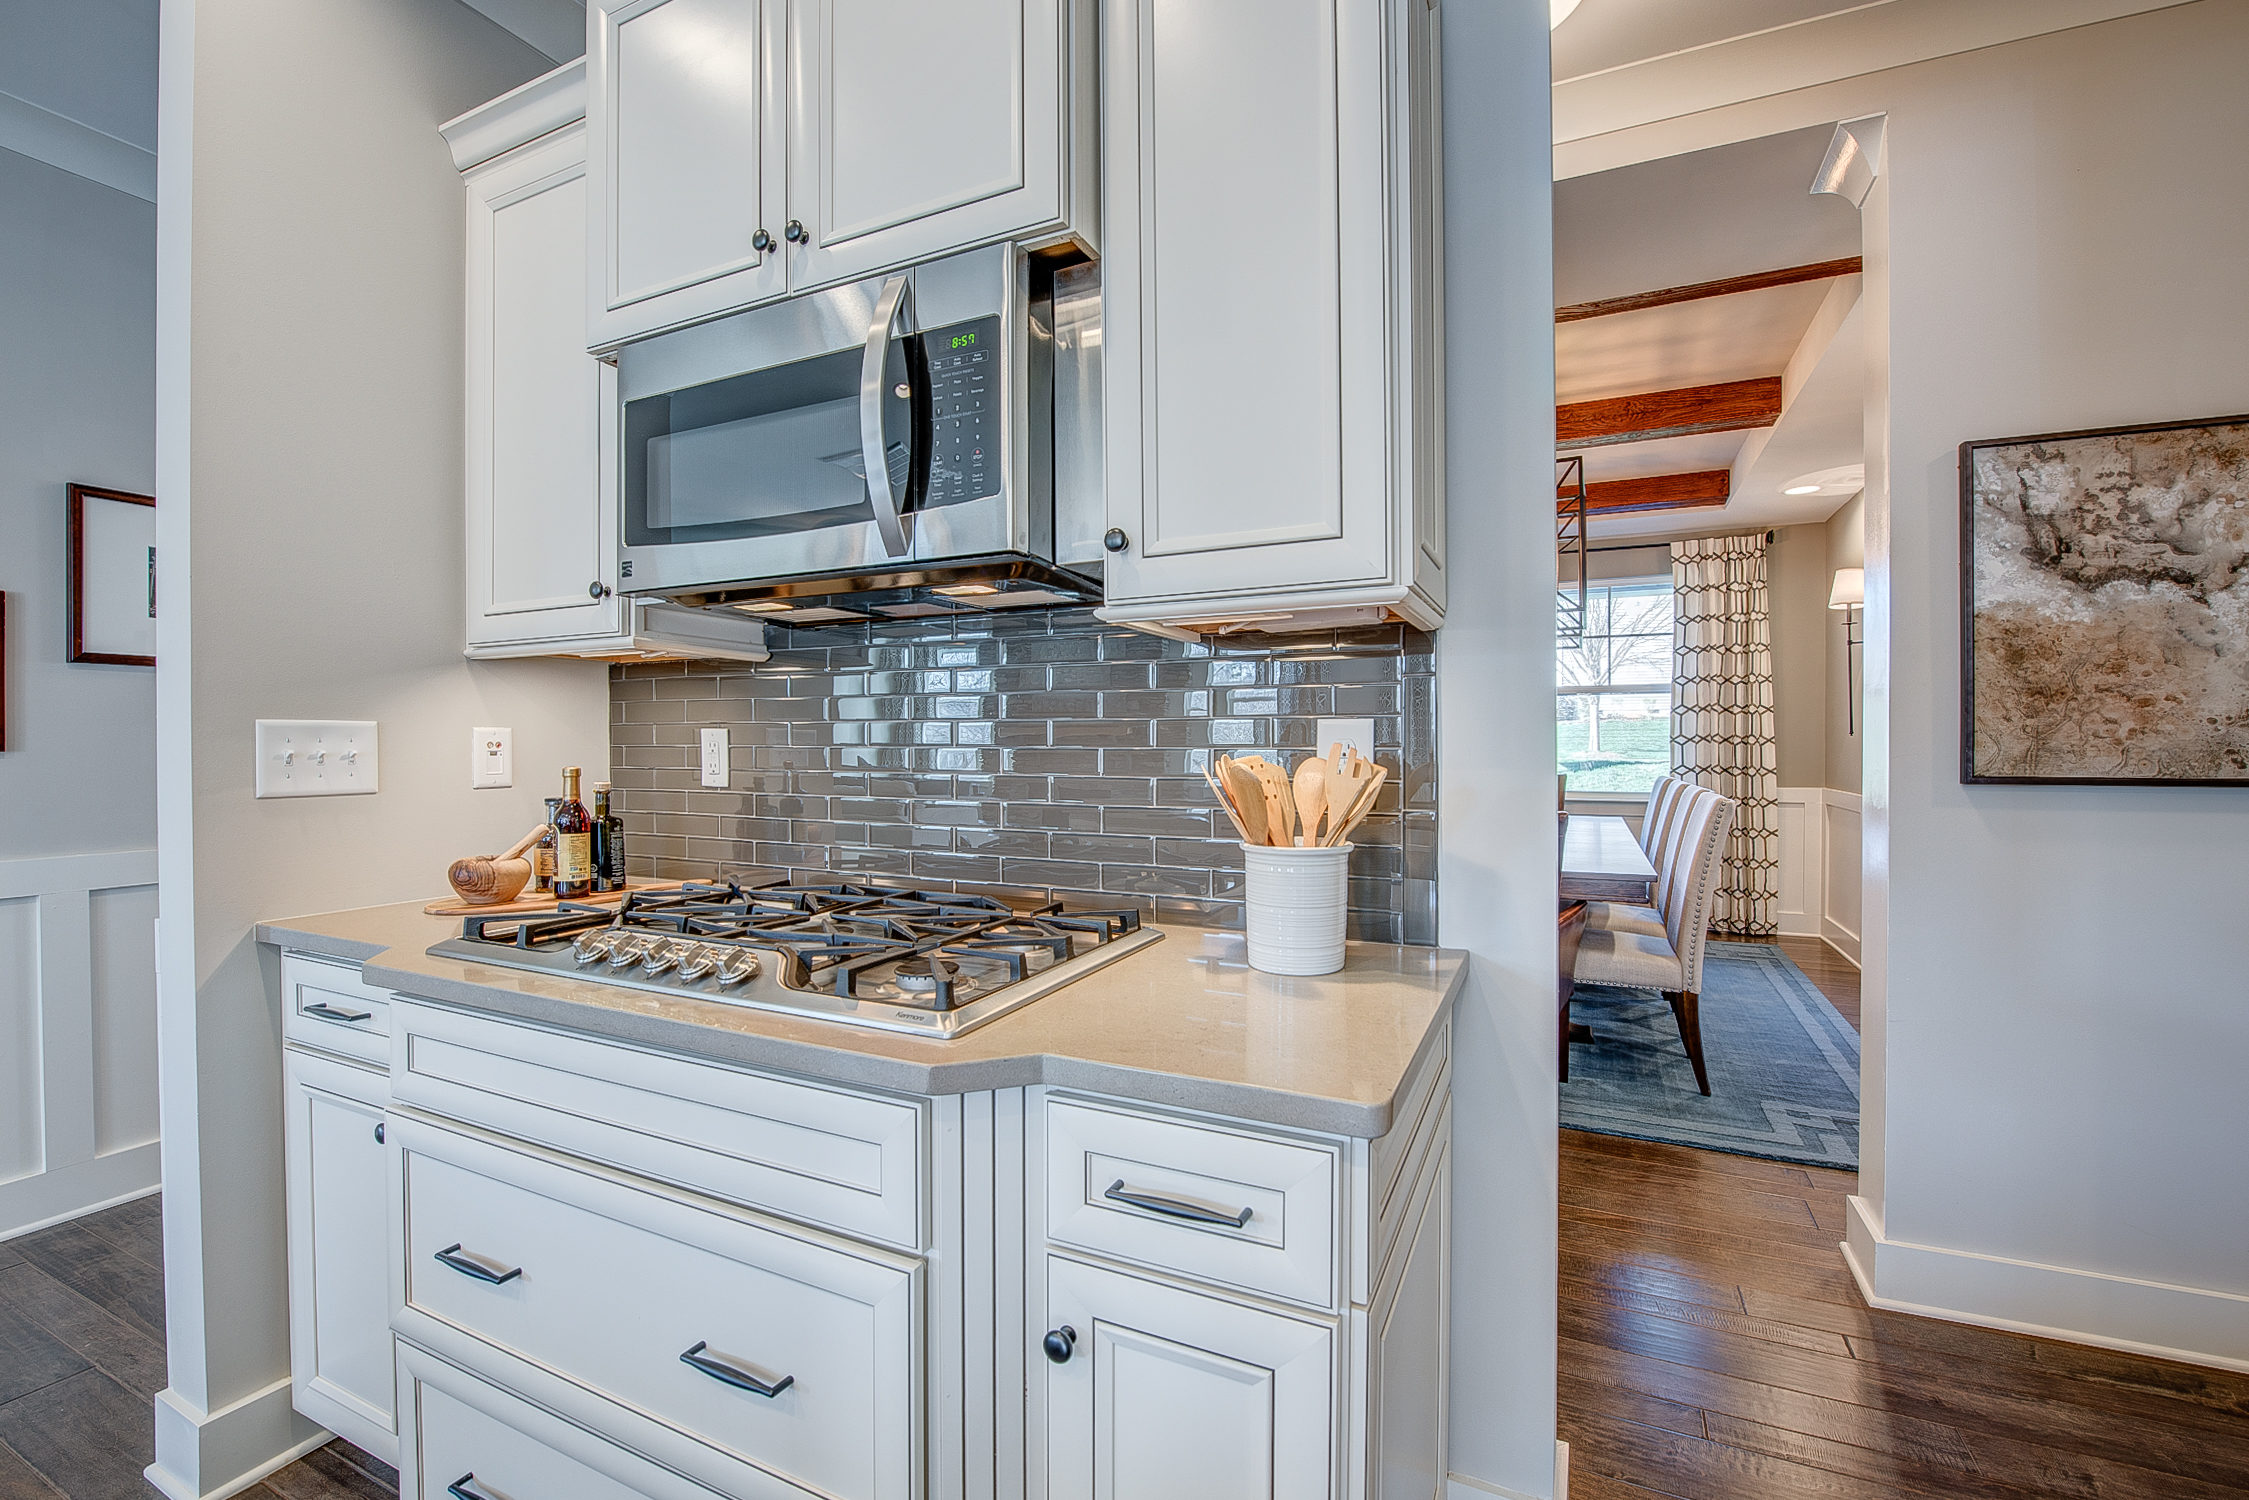 104-bushney-loop-mooresville-print-021-9-kitchen-2249x1500-300dpi_33628712261_o.jpg